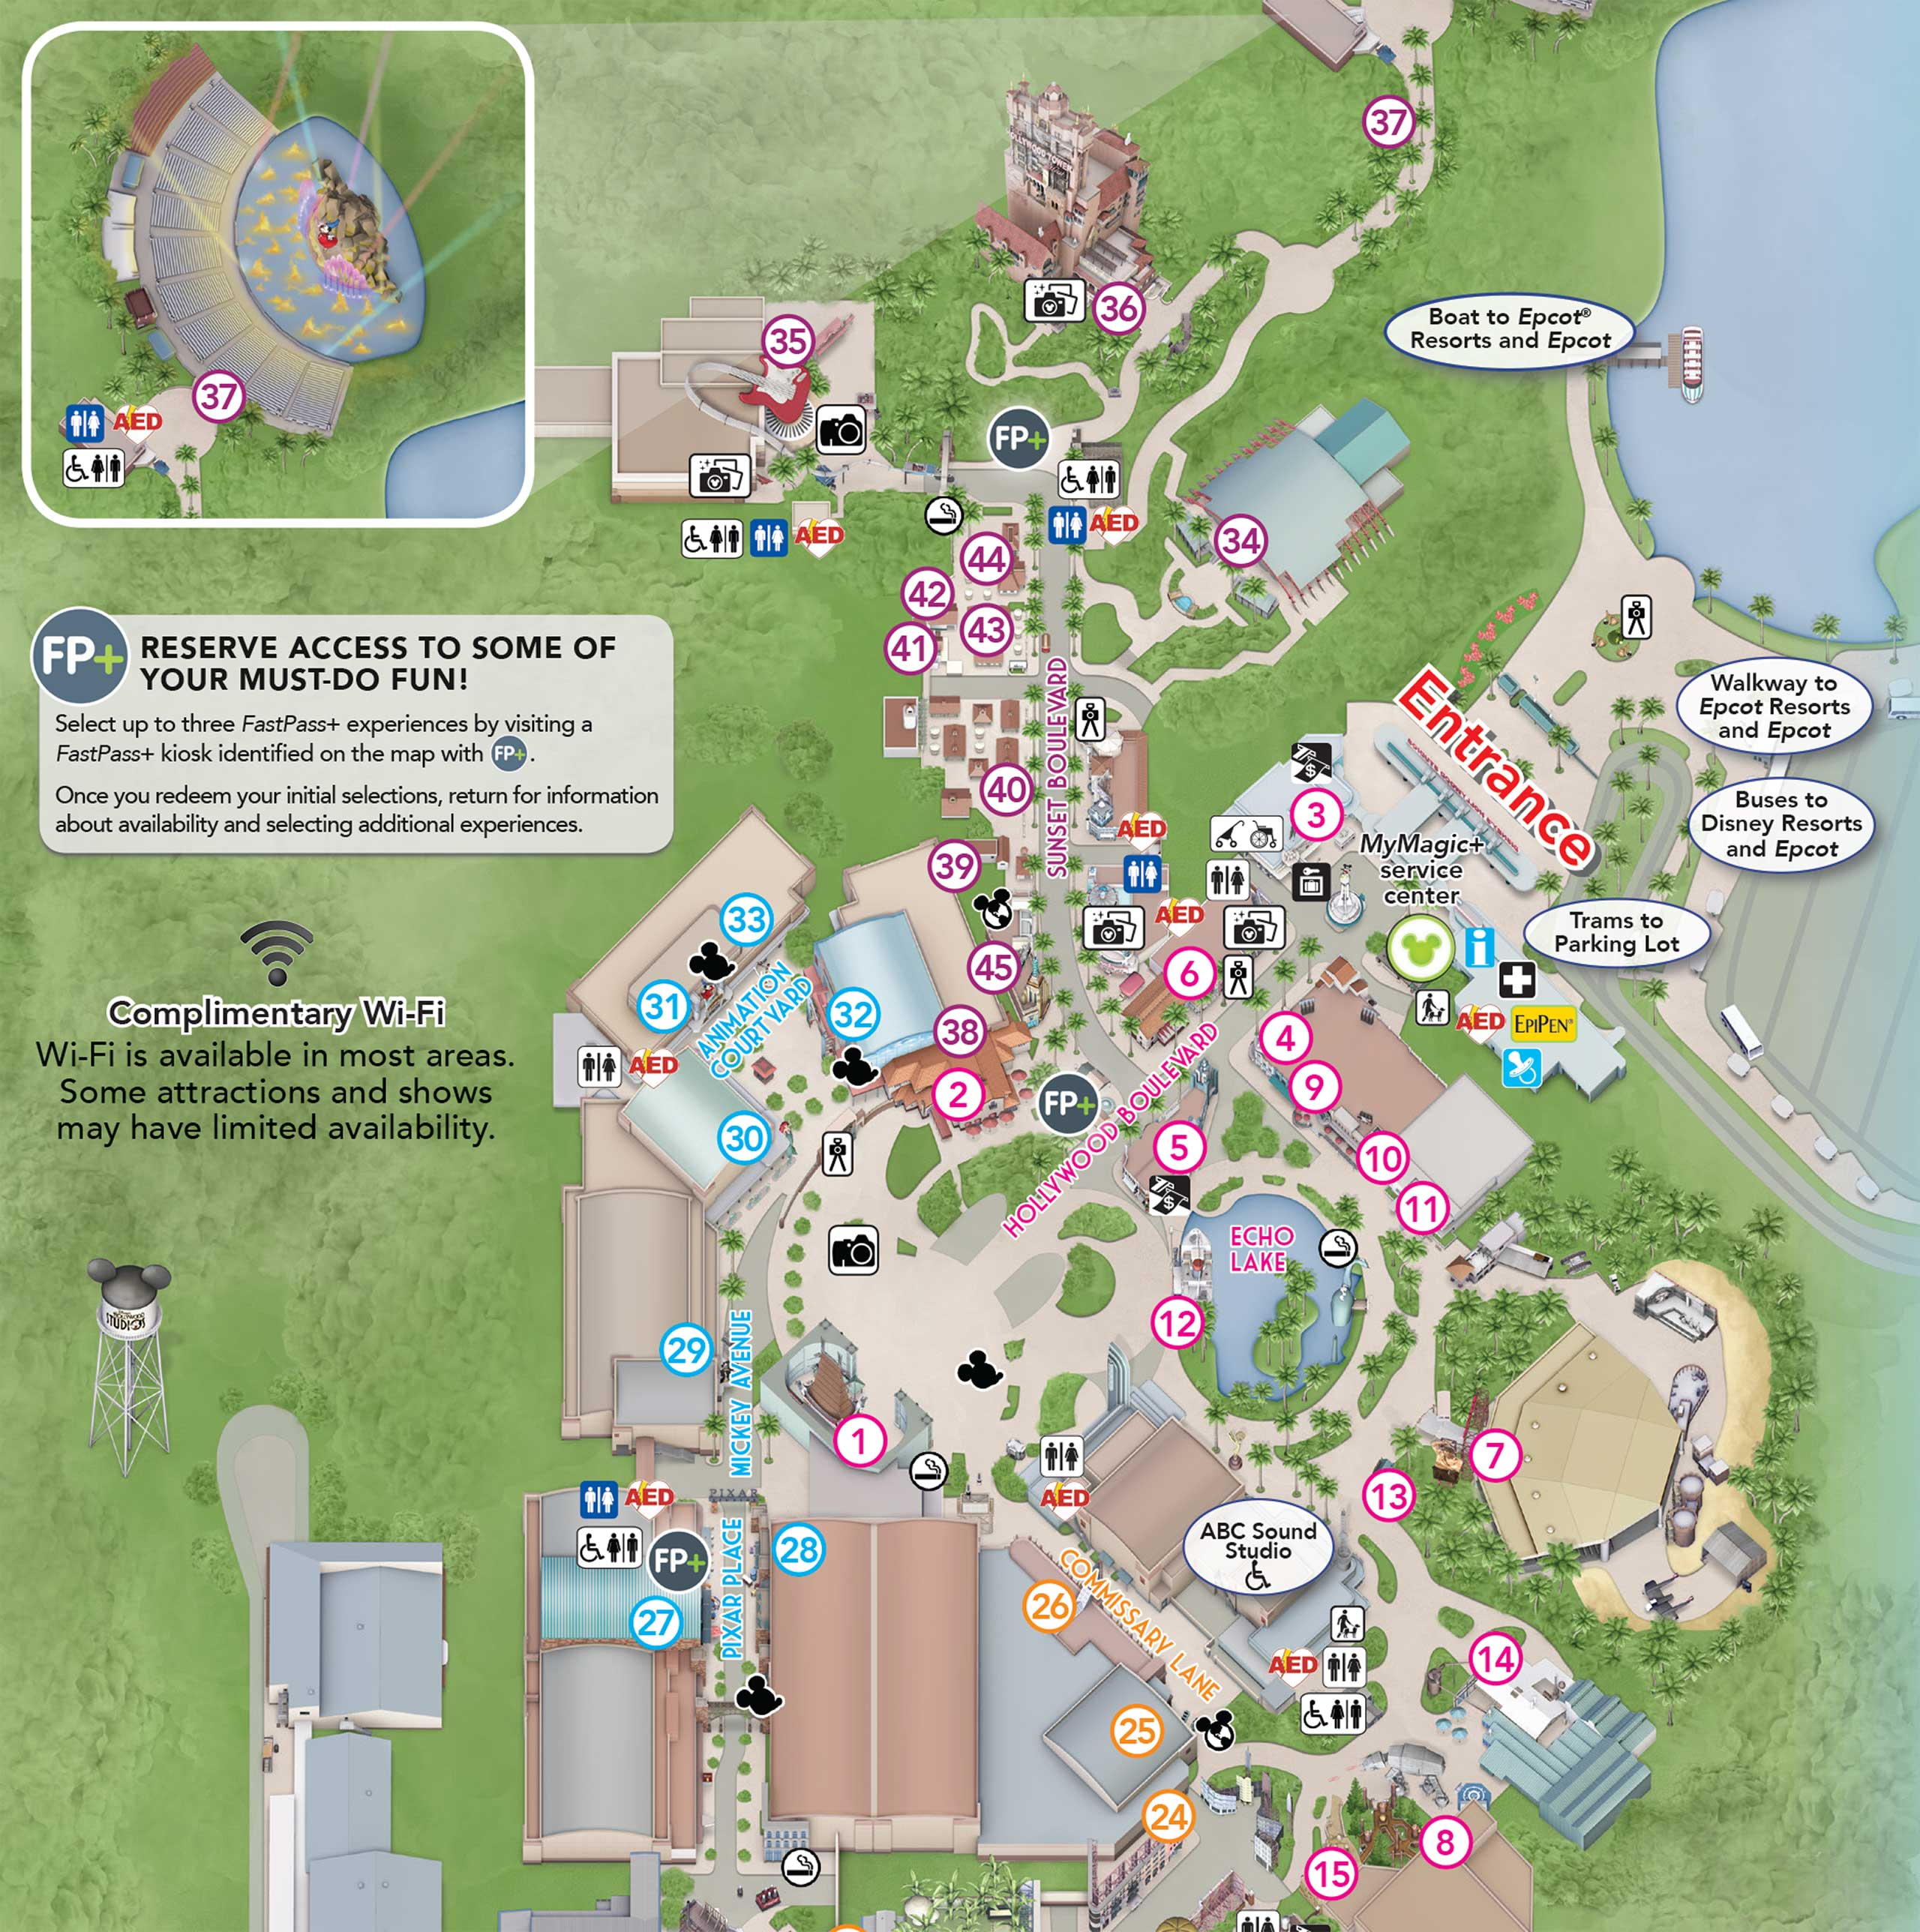 PHOTO New Hollywood Studios guide map shows a hatless Hollywood Blvd